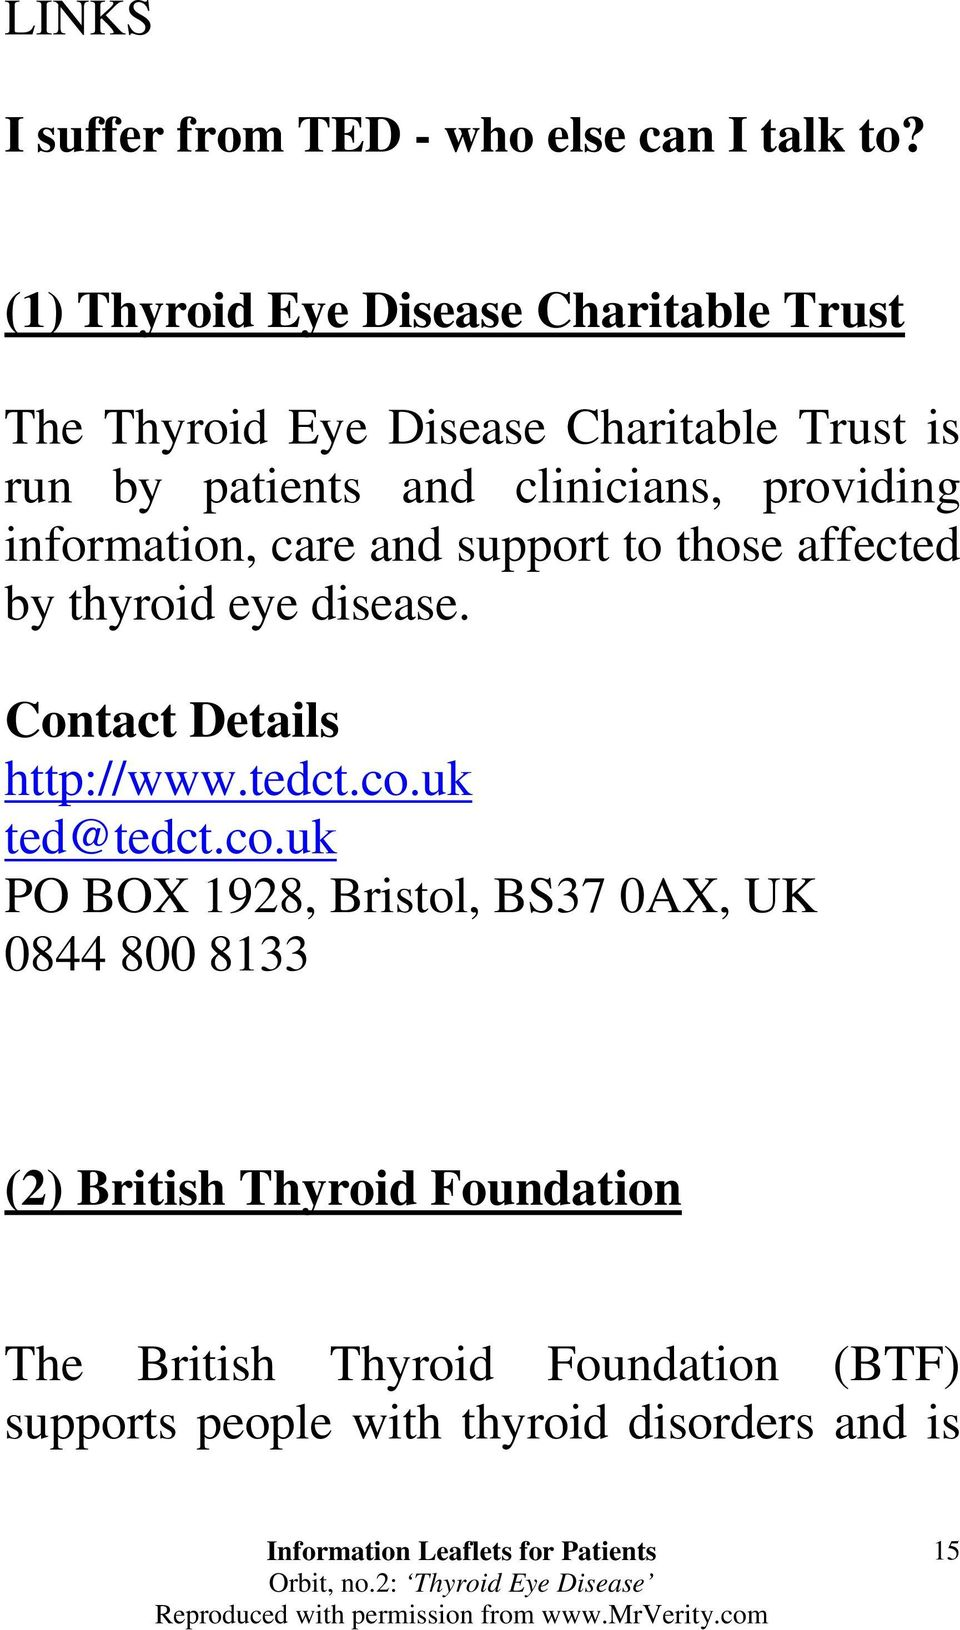 providing information, care and support to those affected by thyroid eye disease. Contact Details http://www.tedct.co.